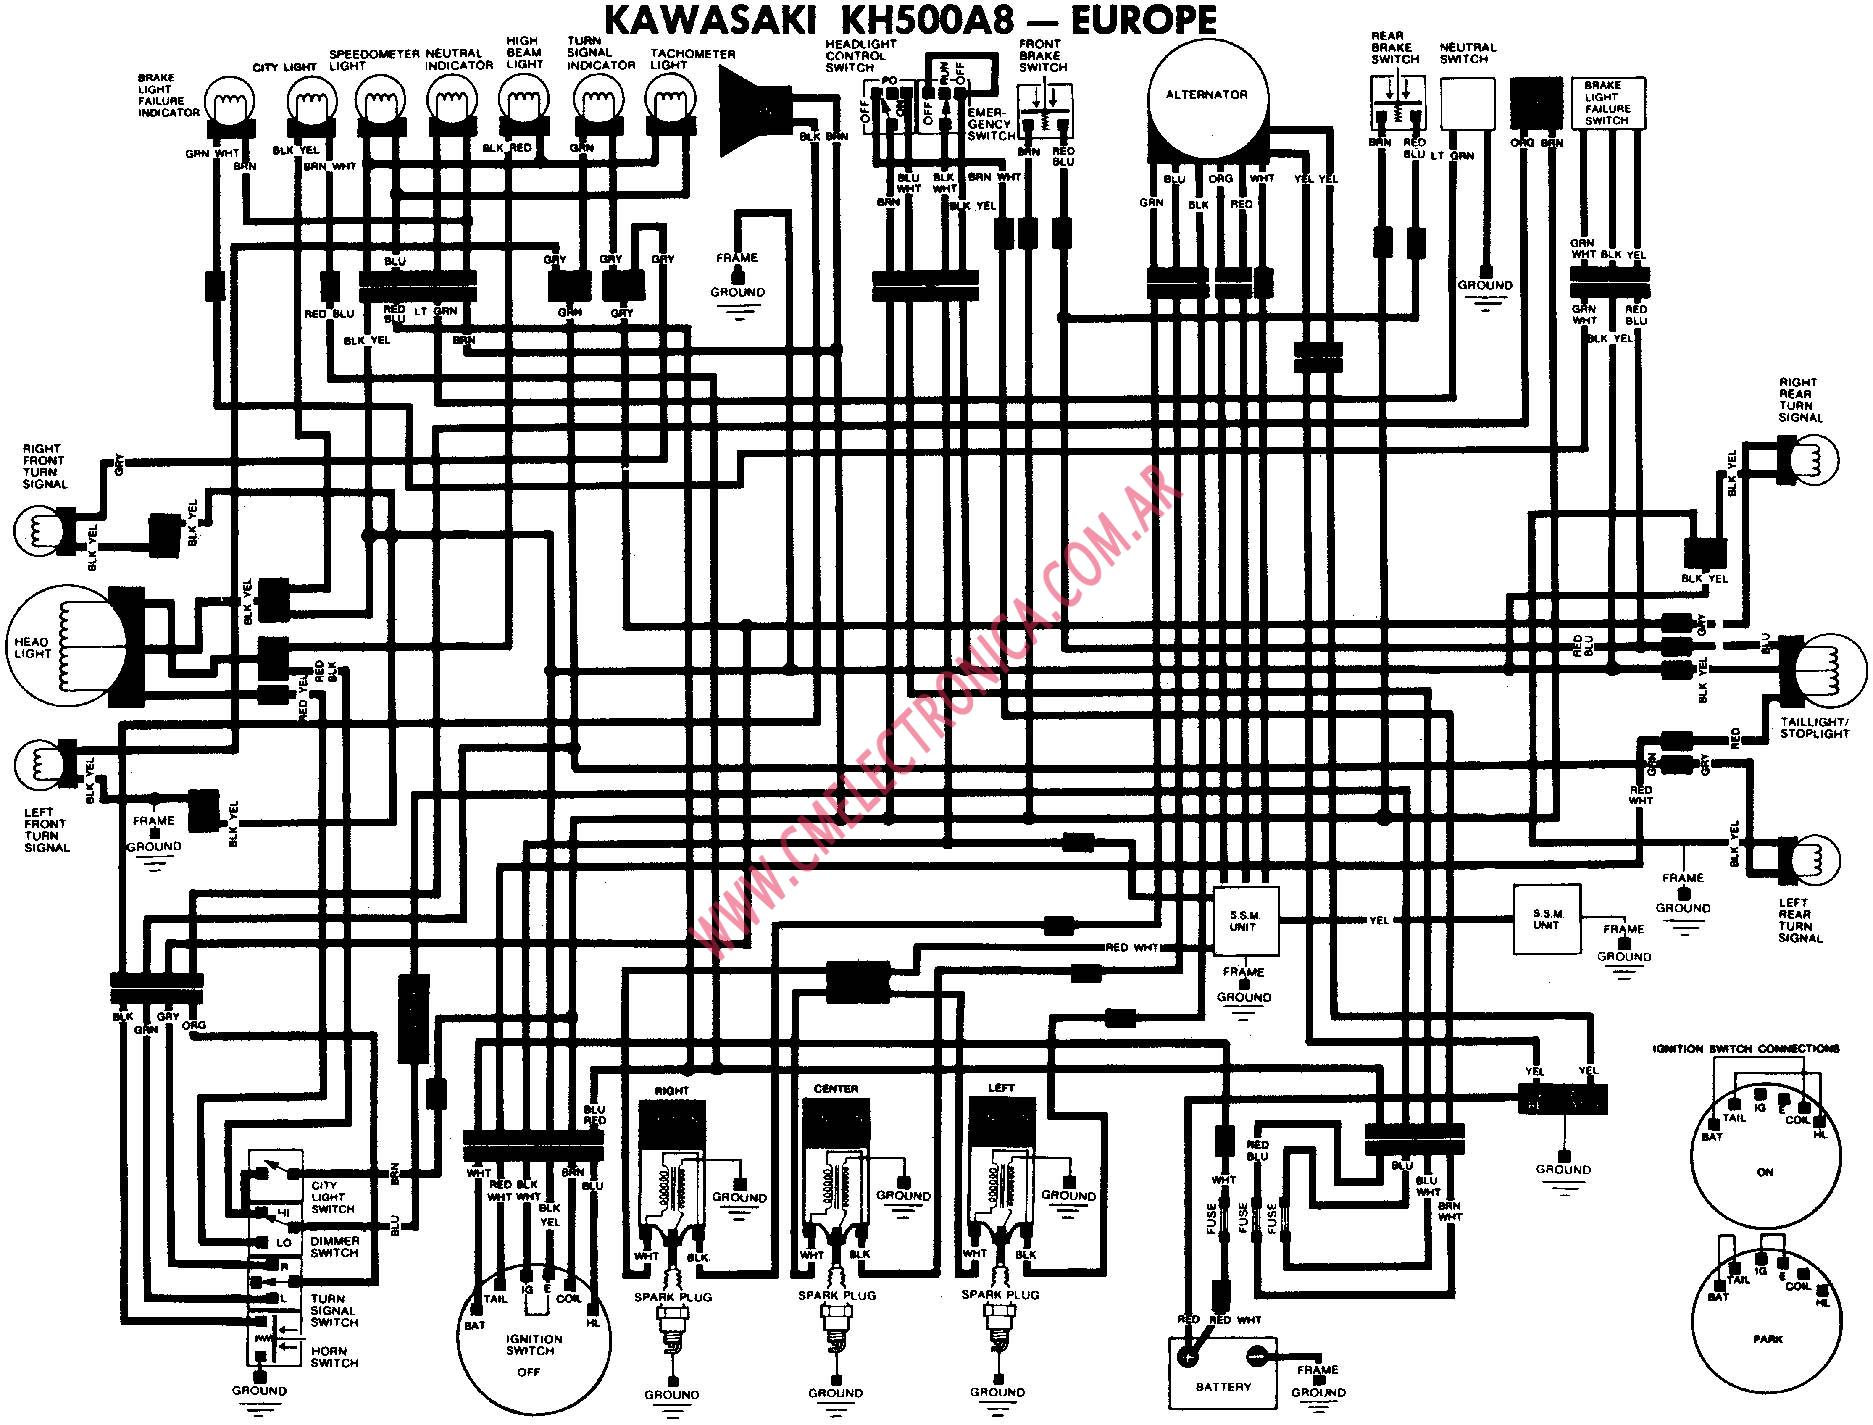 ninja 750 wiring diagram schematics and wiring diagrams ninja wiring diagram diagrams and schematics kawasaki